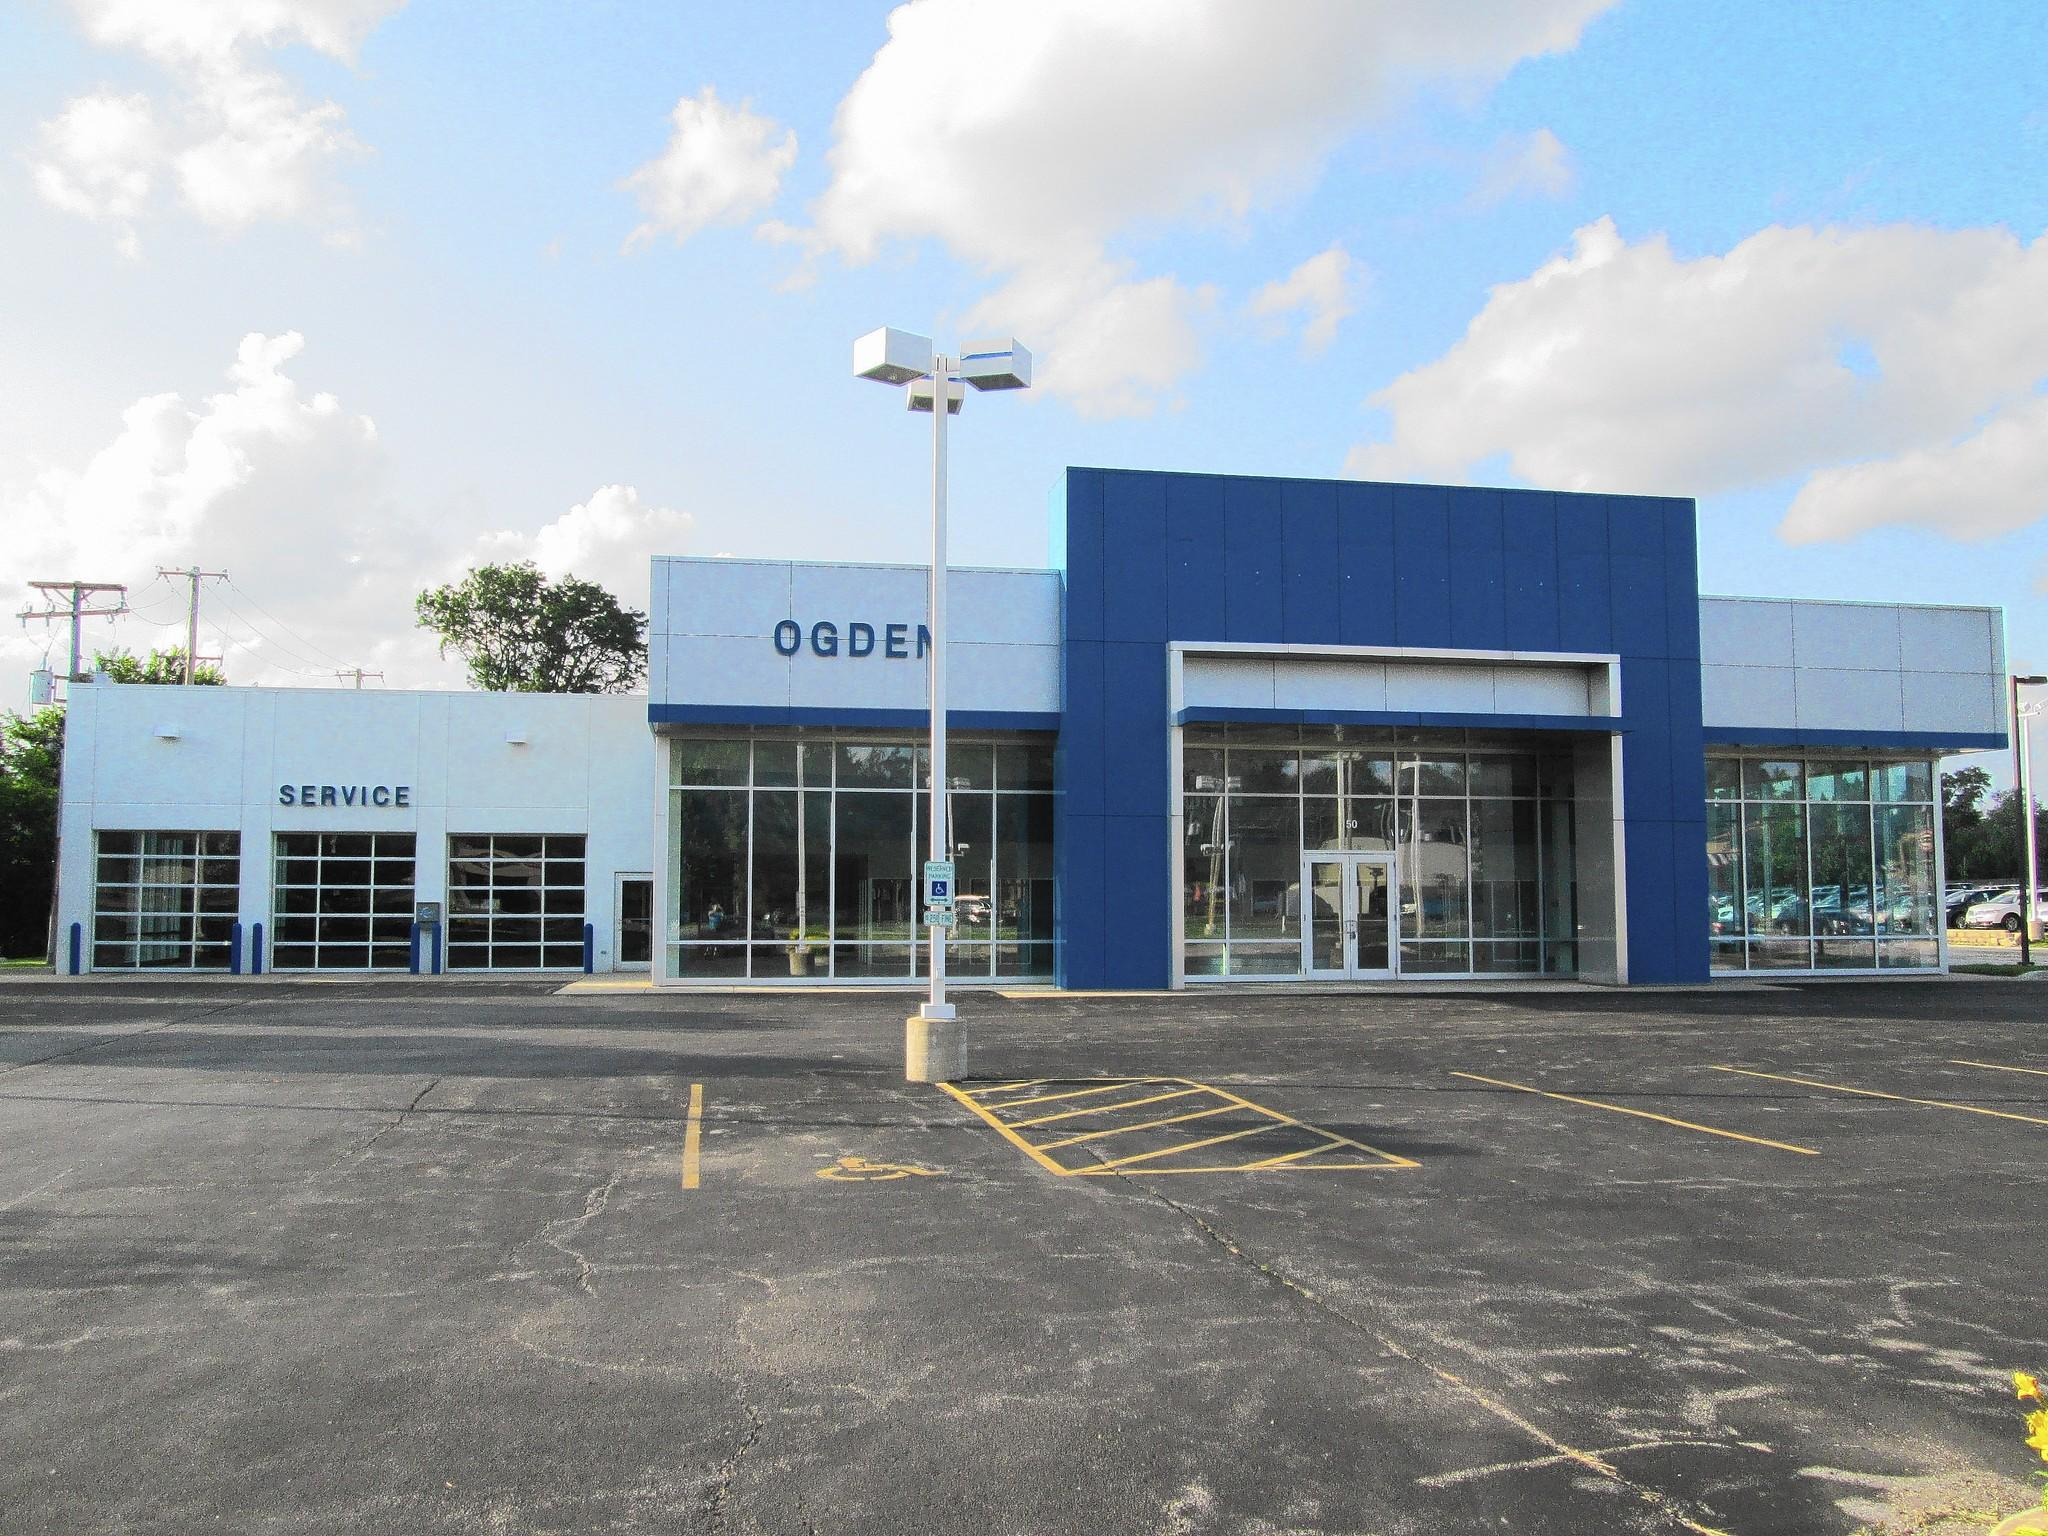 A luxury car and motorcycle dealership is moving into the former Chevrolet site.